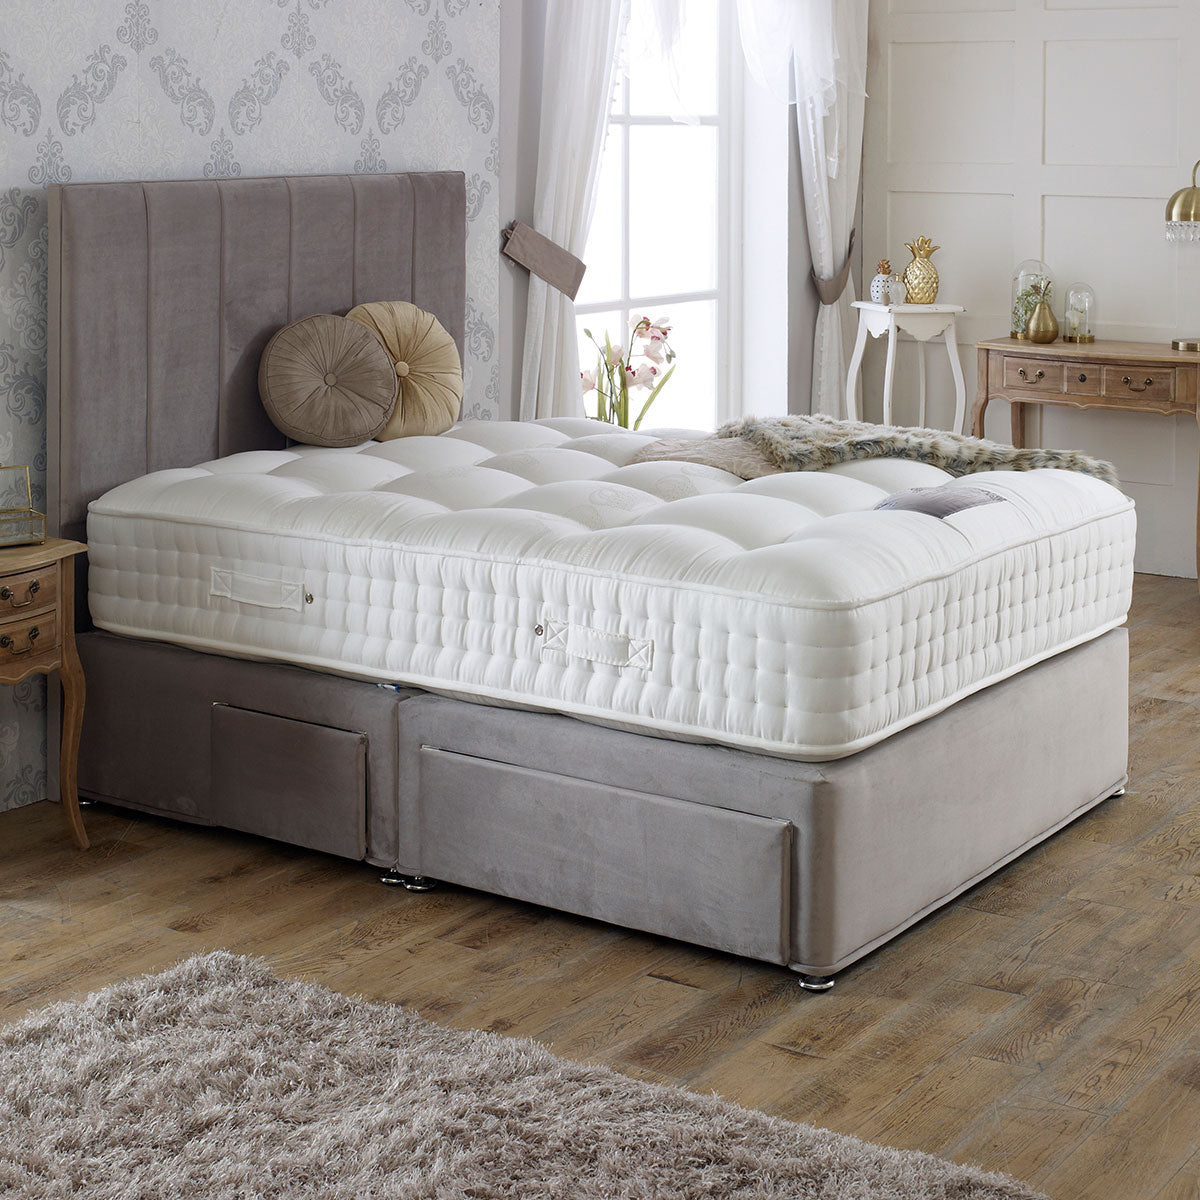 Royal Crown 2000 Divan Bed Set - Medium Firm Mattress 32cm Depth